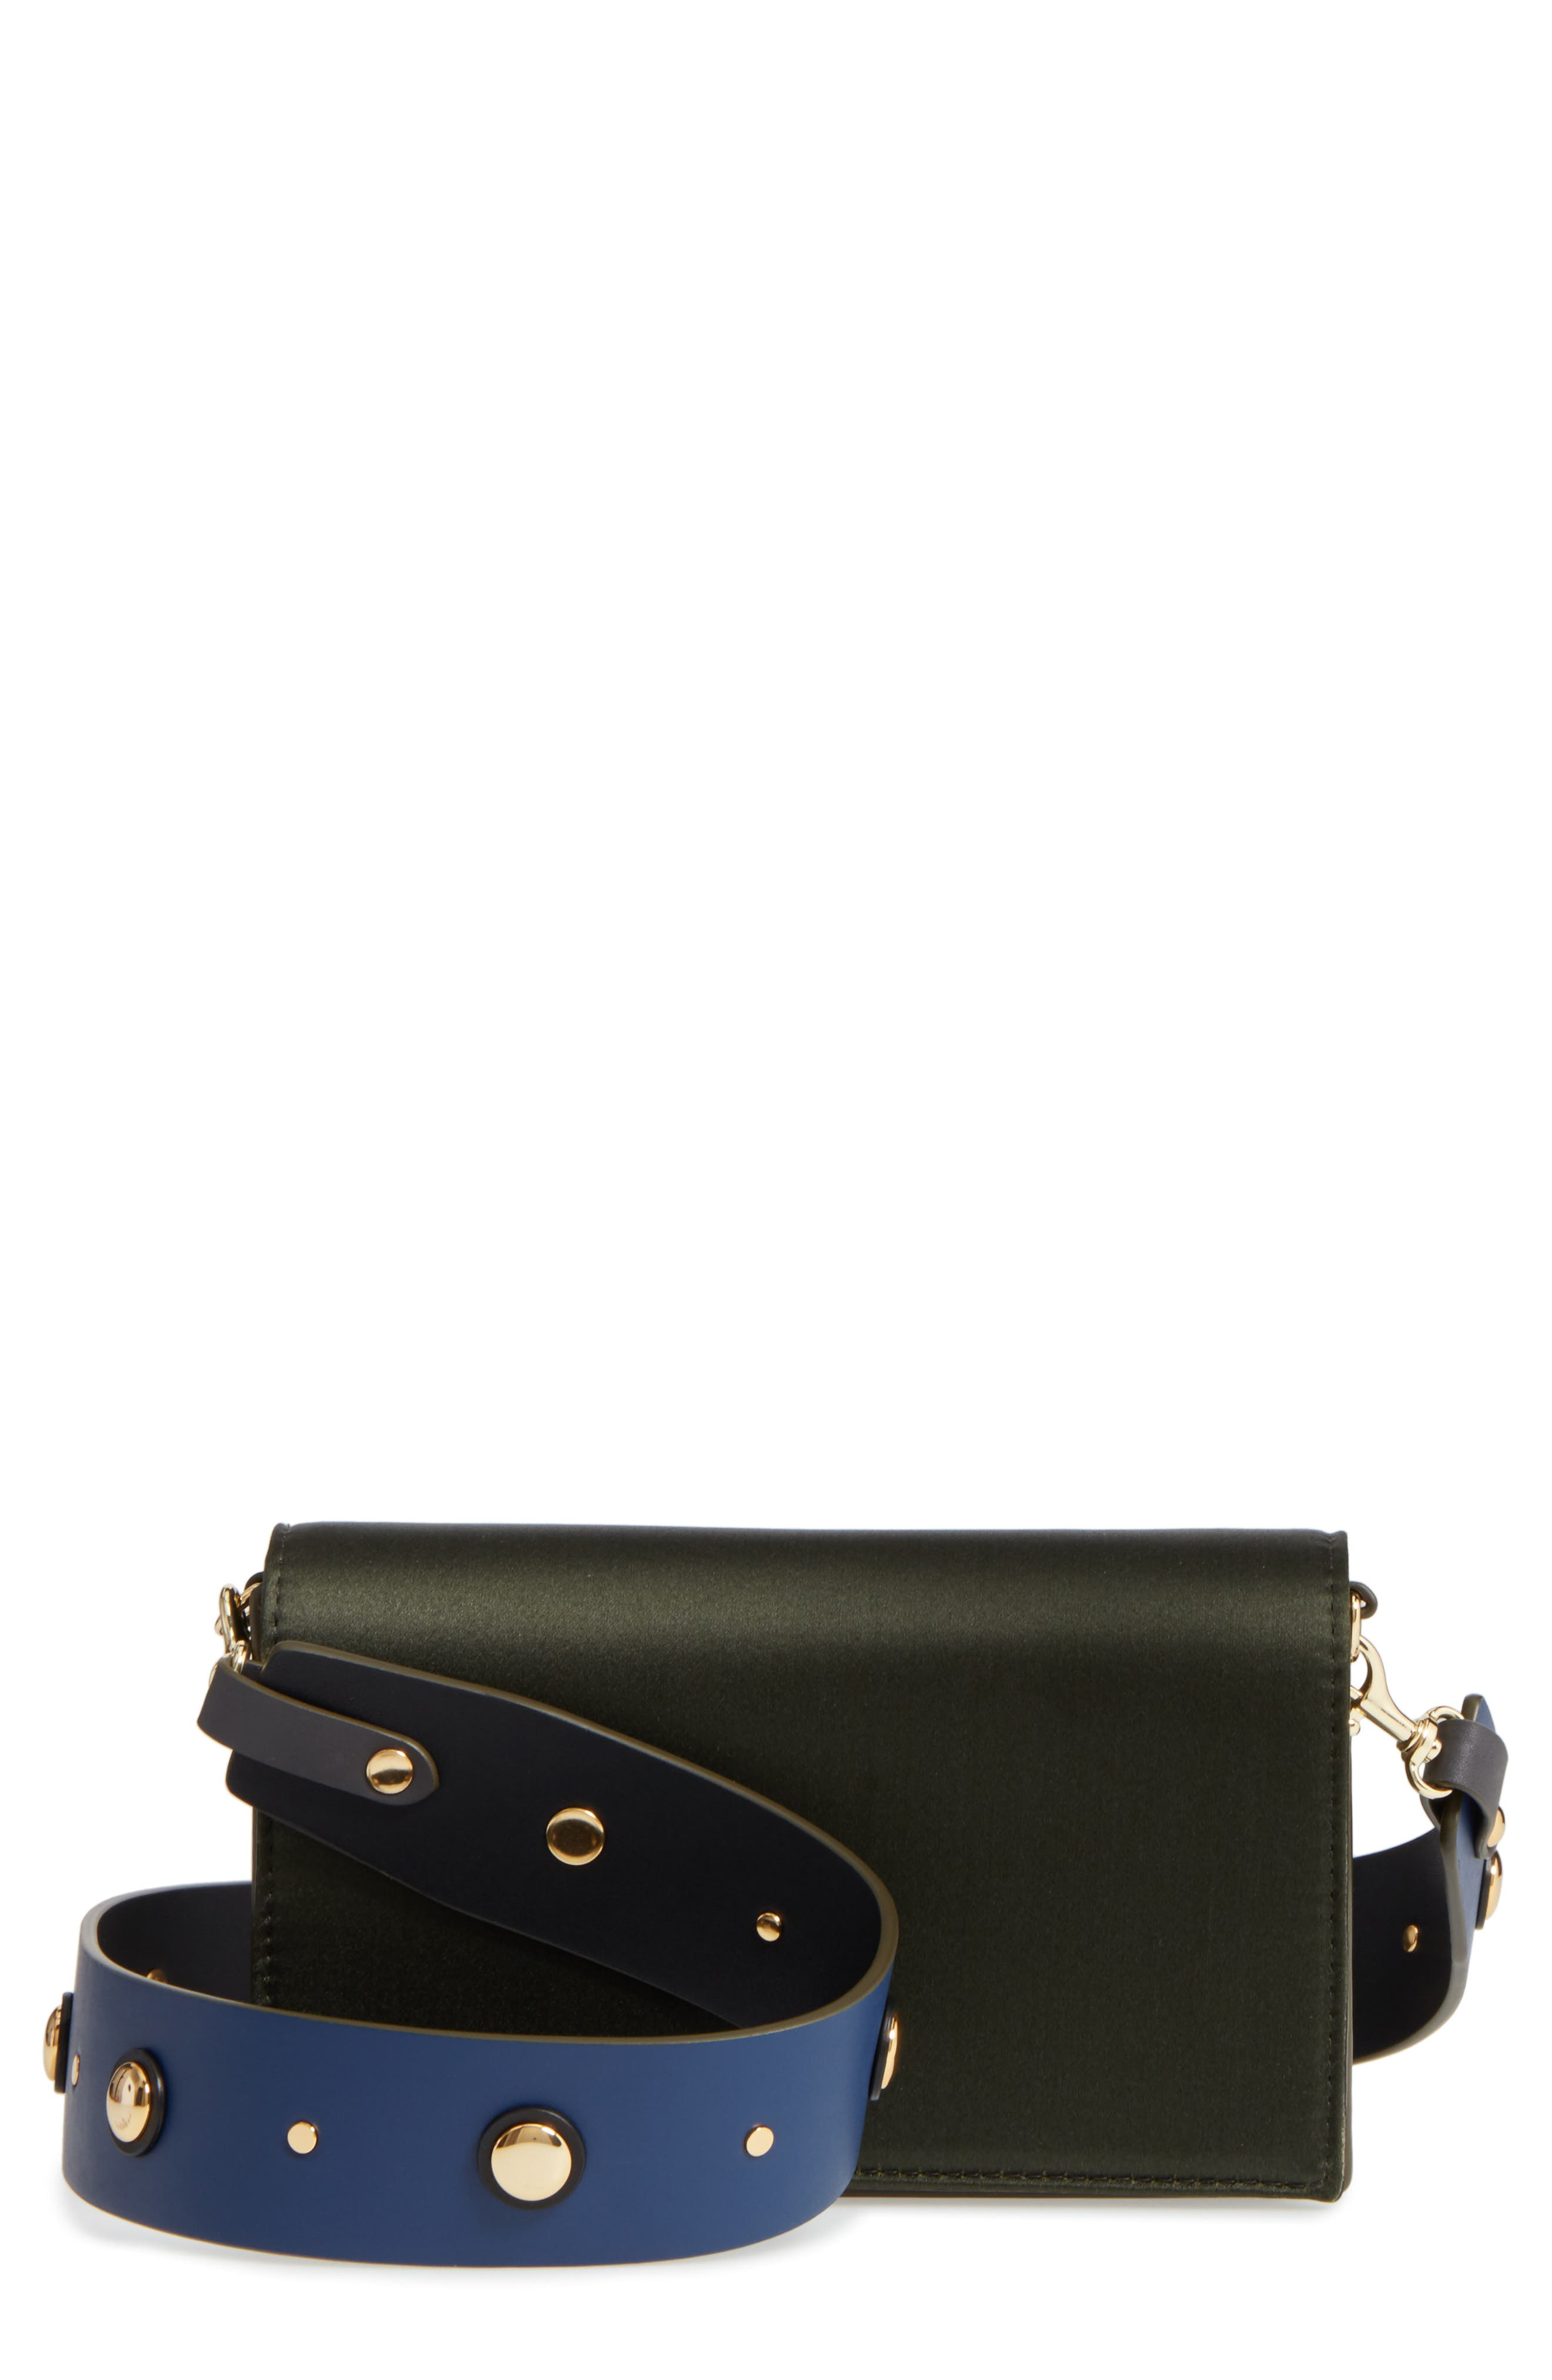 Diane von Furstenberg Soirée Satin Convertible Crossbody Bag